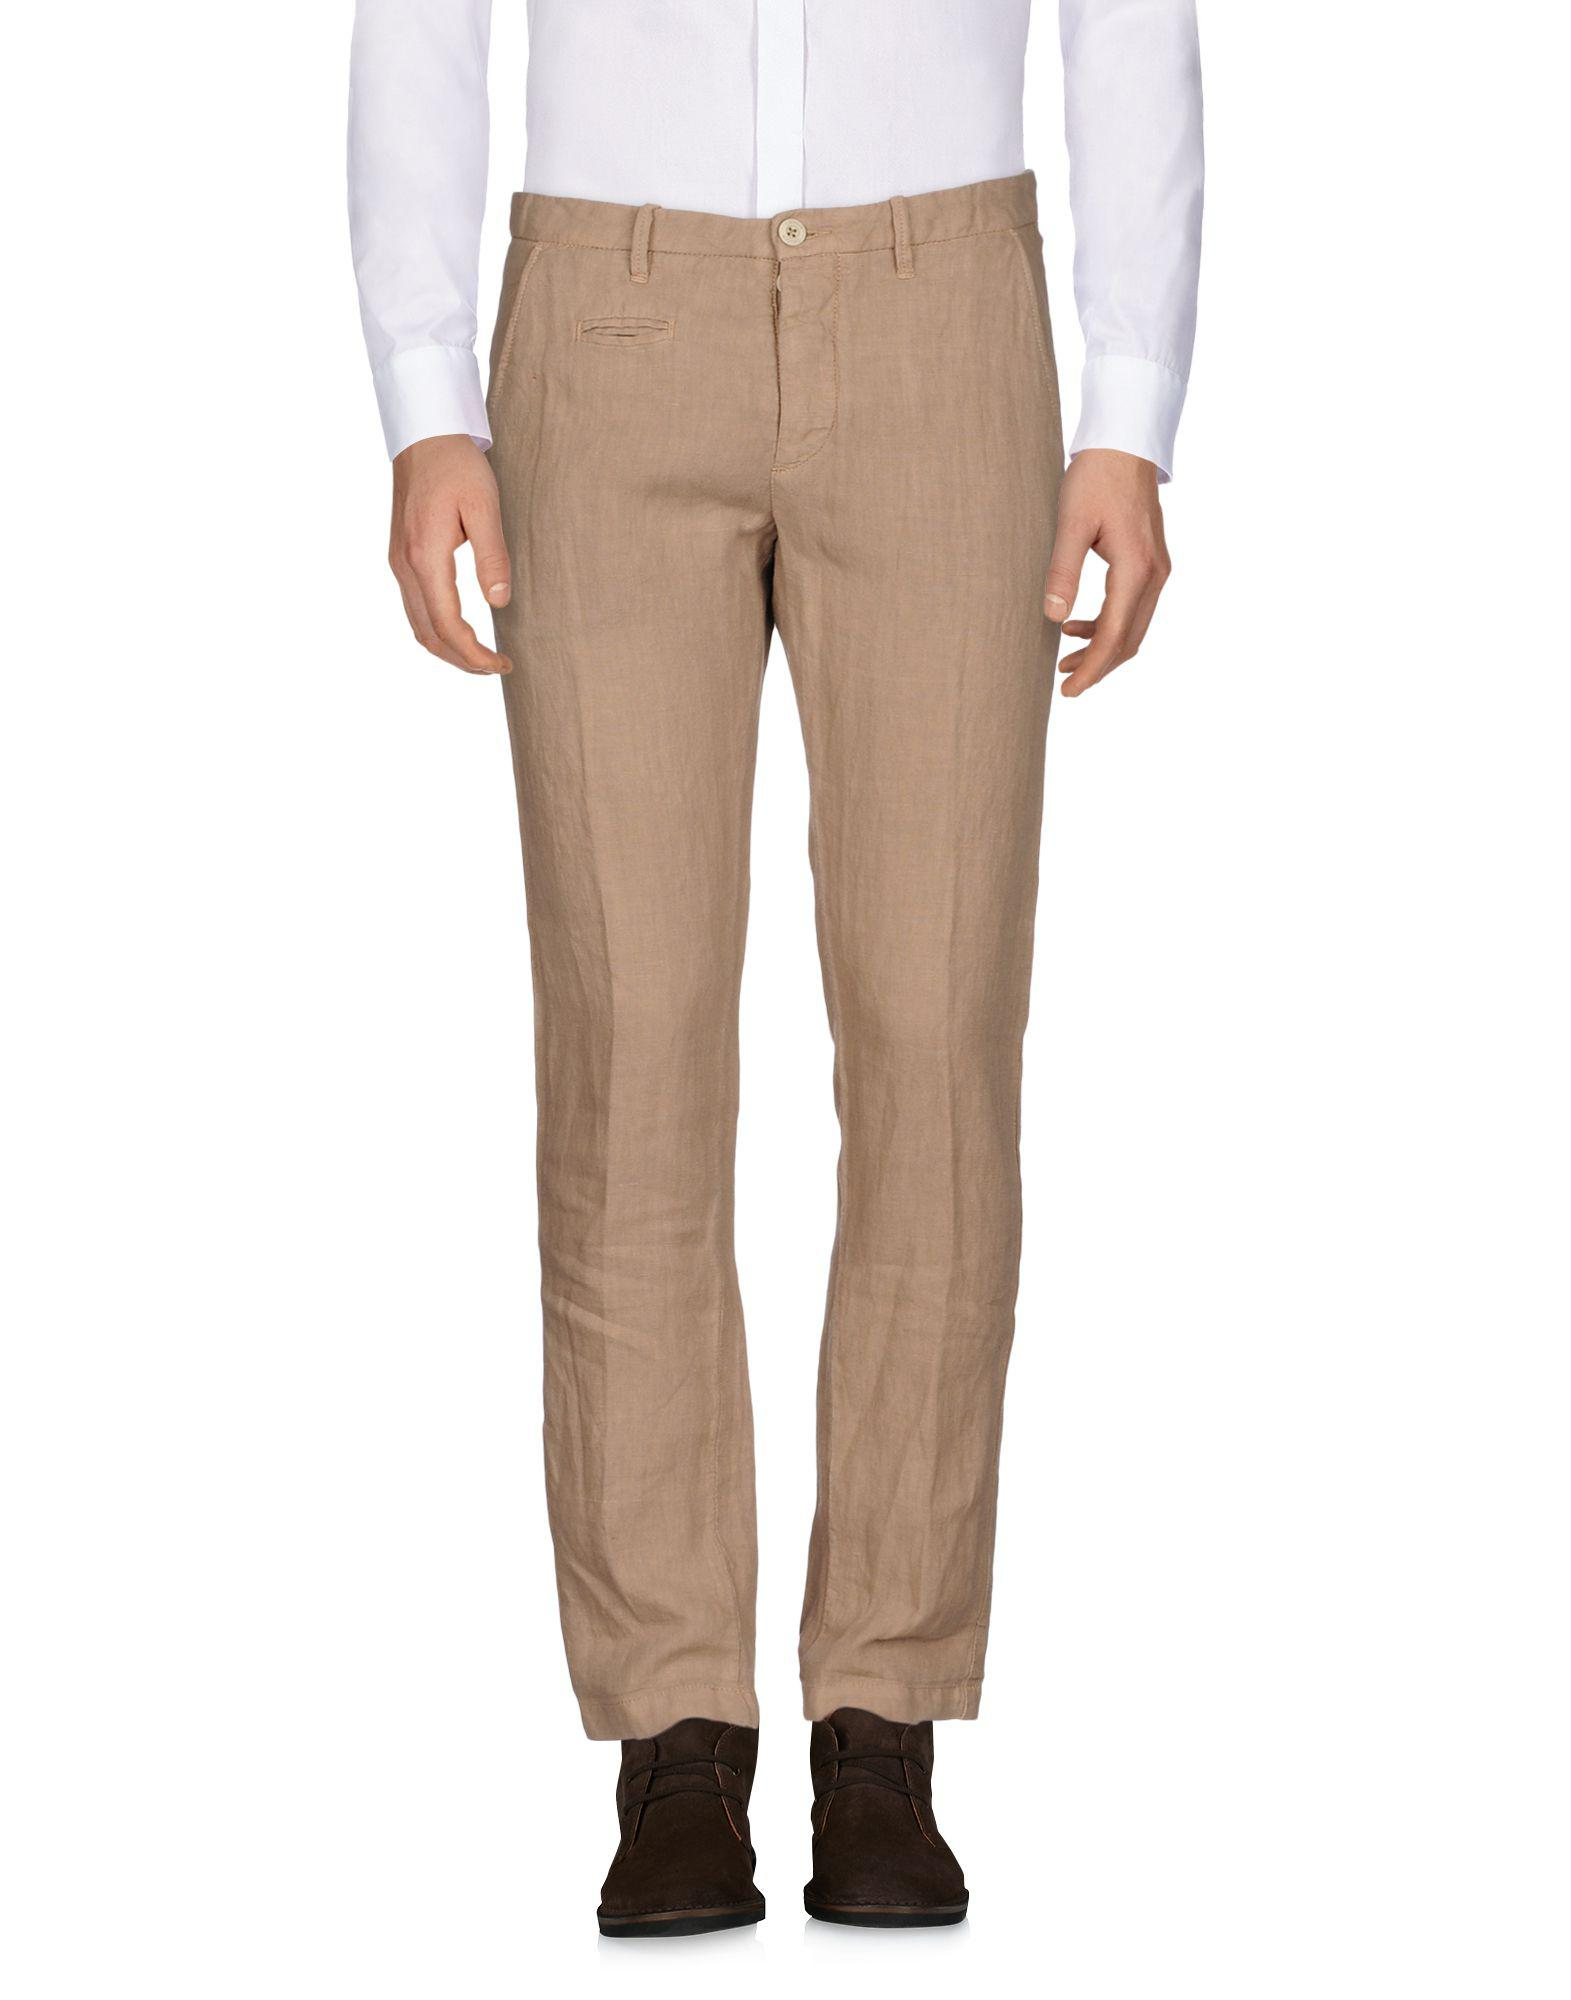 Cheap Price Outlet Sale TROUSERS - Casual trousers L72 Clearance Extremely Cheap Price Cost bo0WGIO